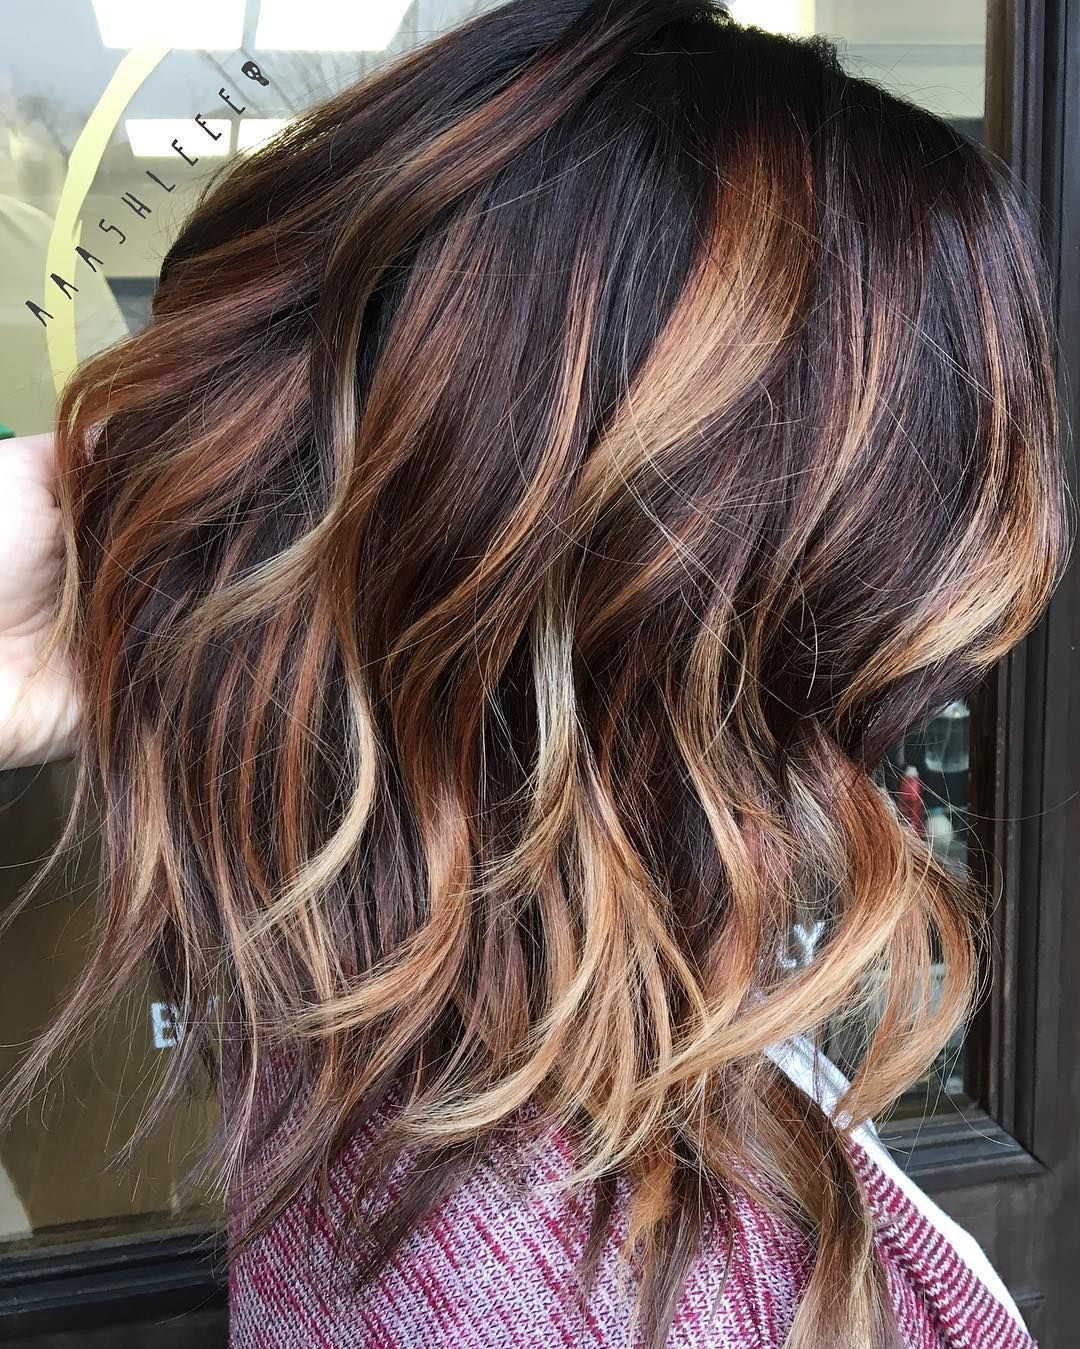 50 HOTTEST Balayage Hair Ideas to Try in 2021 - Ha